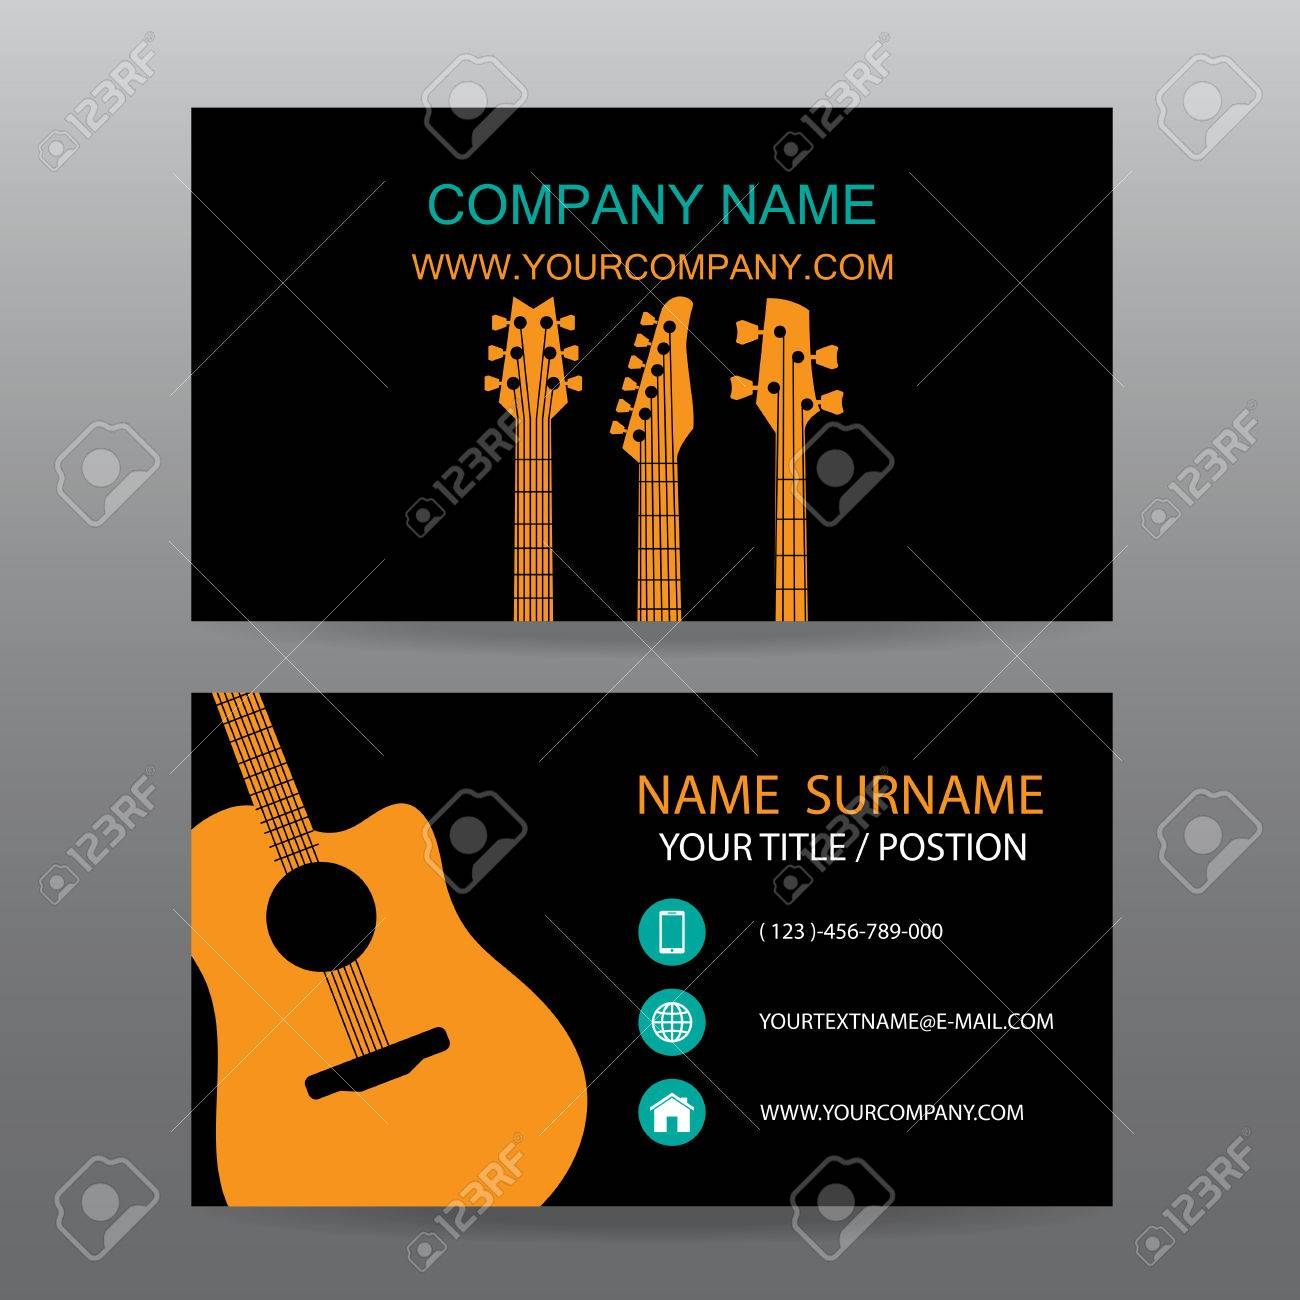 Business Card Vector Background,Musician Royalty Free Cliparts ...